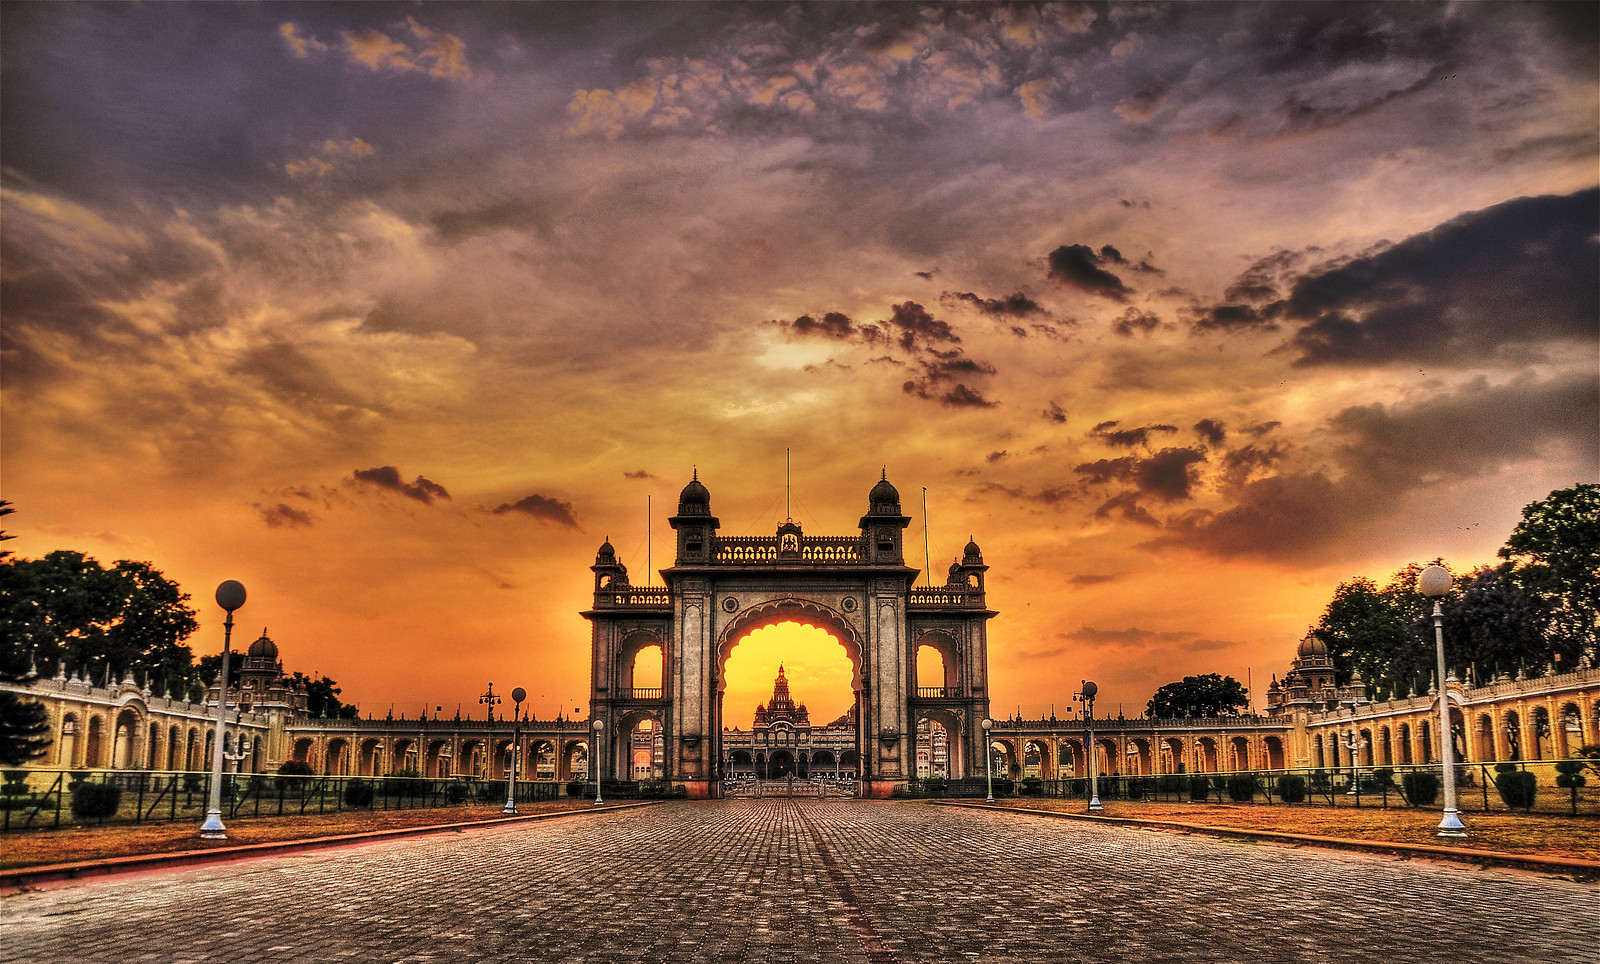 Main Gate of the Mysore Palace